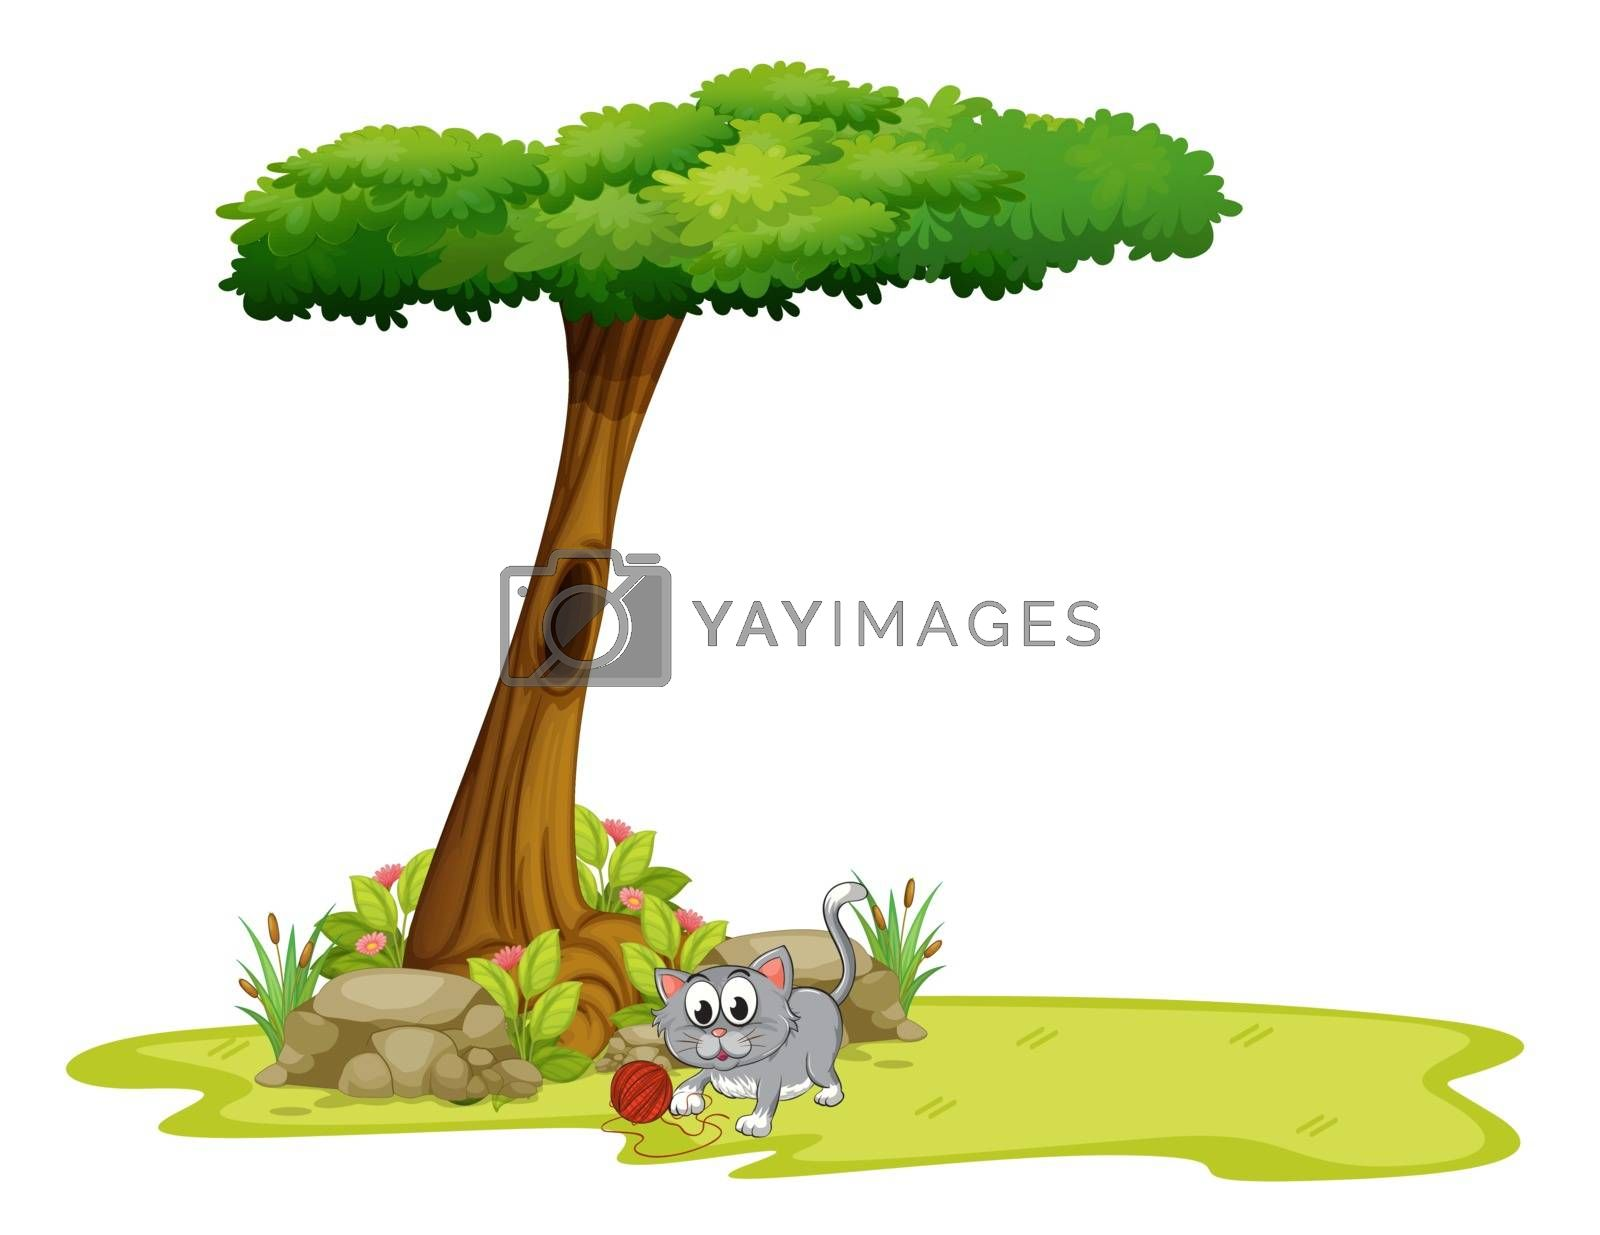 Illustration of a gray cat under a tree with a hole on a white background